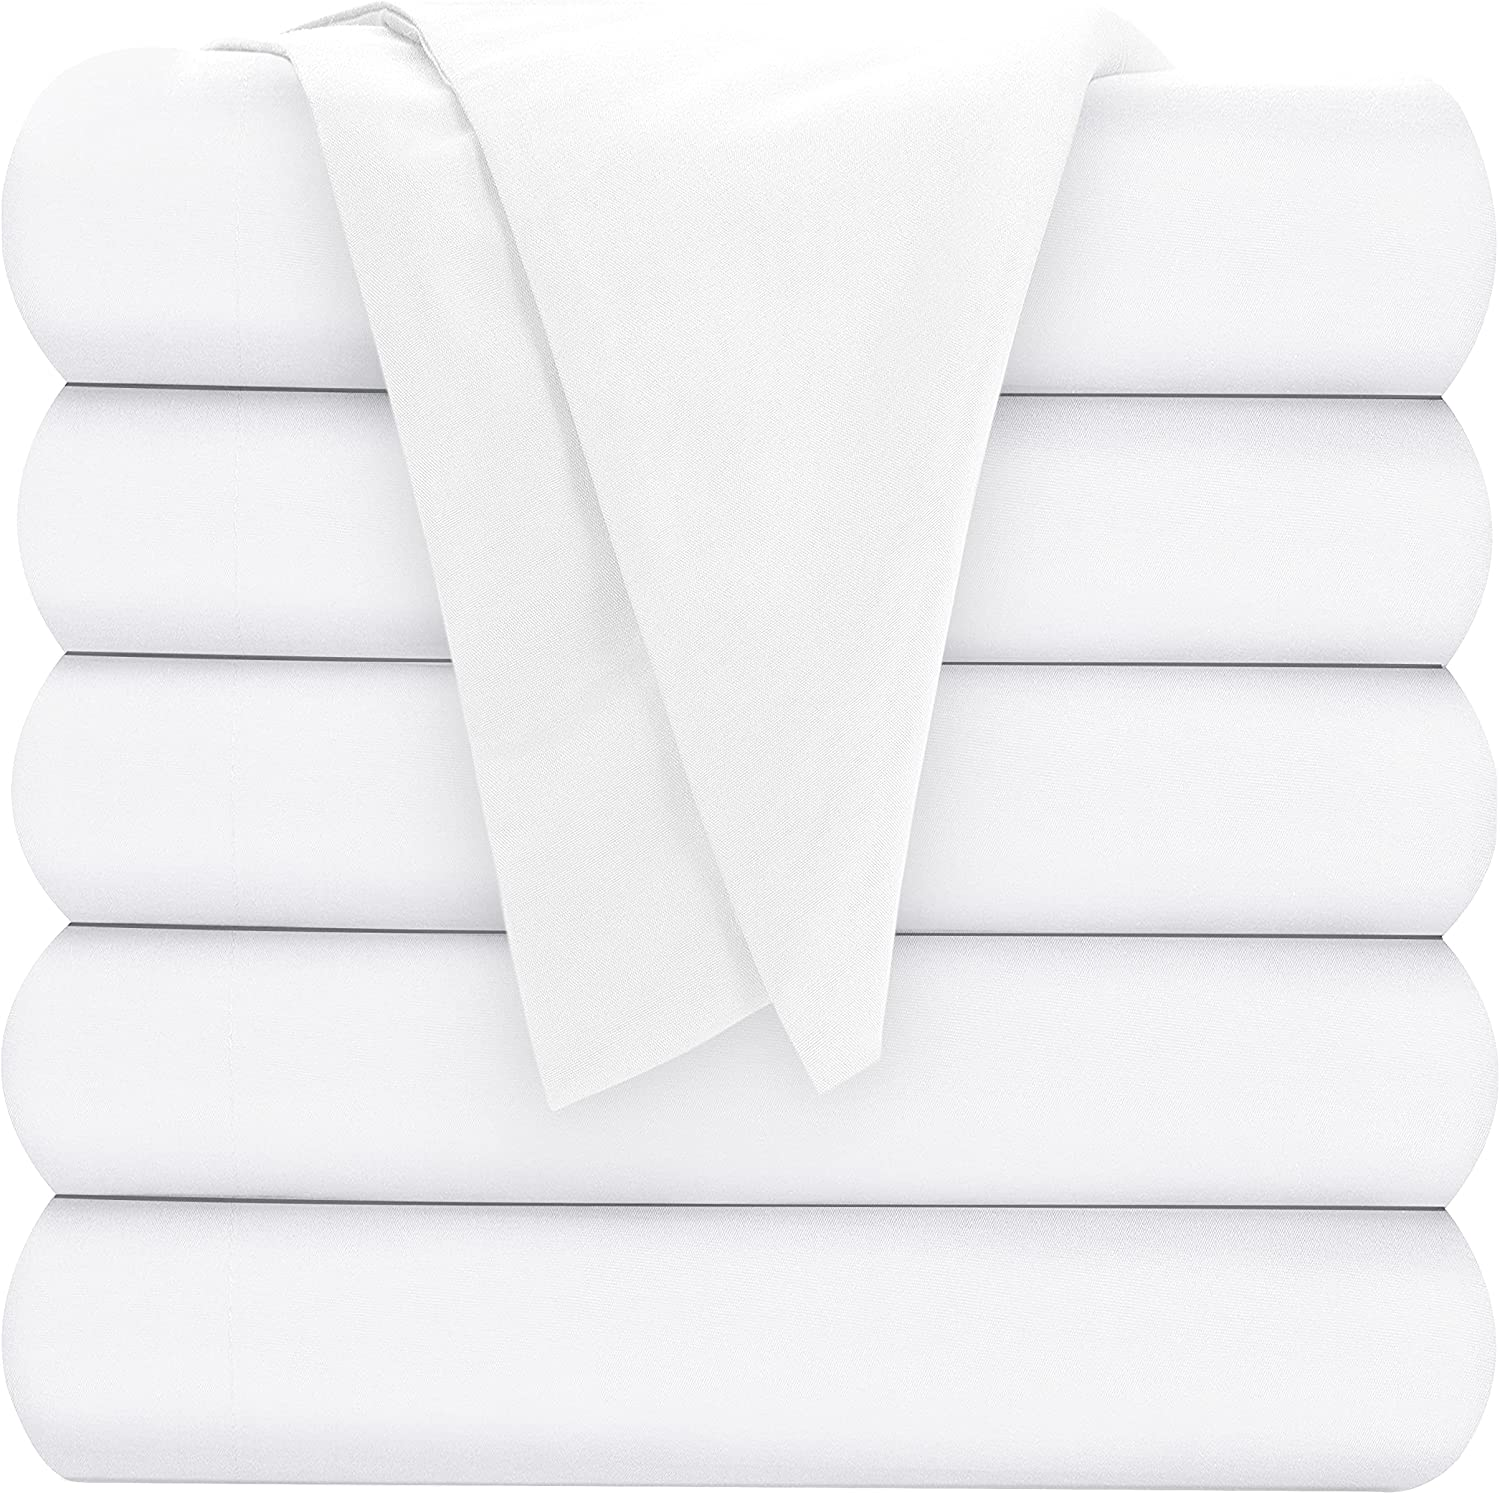 Oakias Queen Flat Sheets White – Jacksonville Mall for Pack of Bed 6 Top Our shop most popular